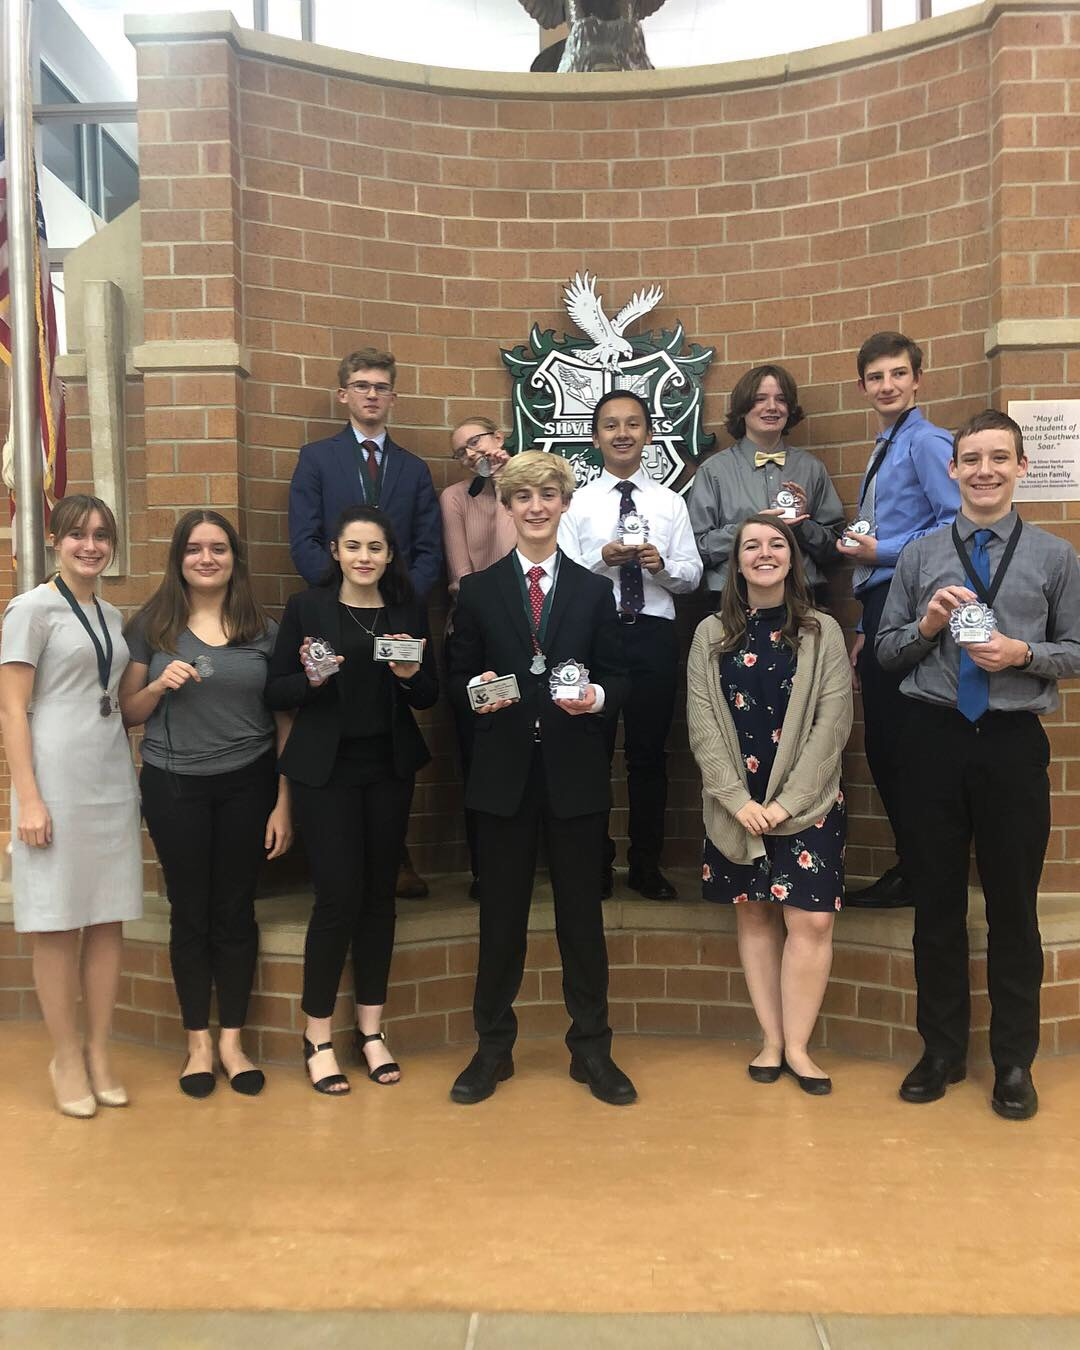 The LHS Debate team poses for a photo with their awards at Lincoln Southwest High School. Courtesy of Luke Moberly (11).